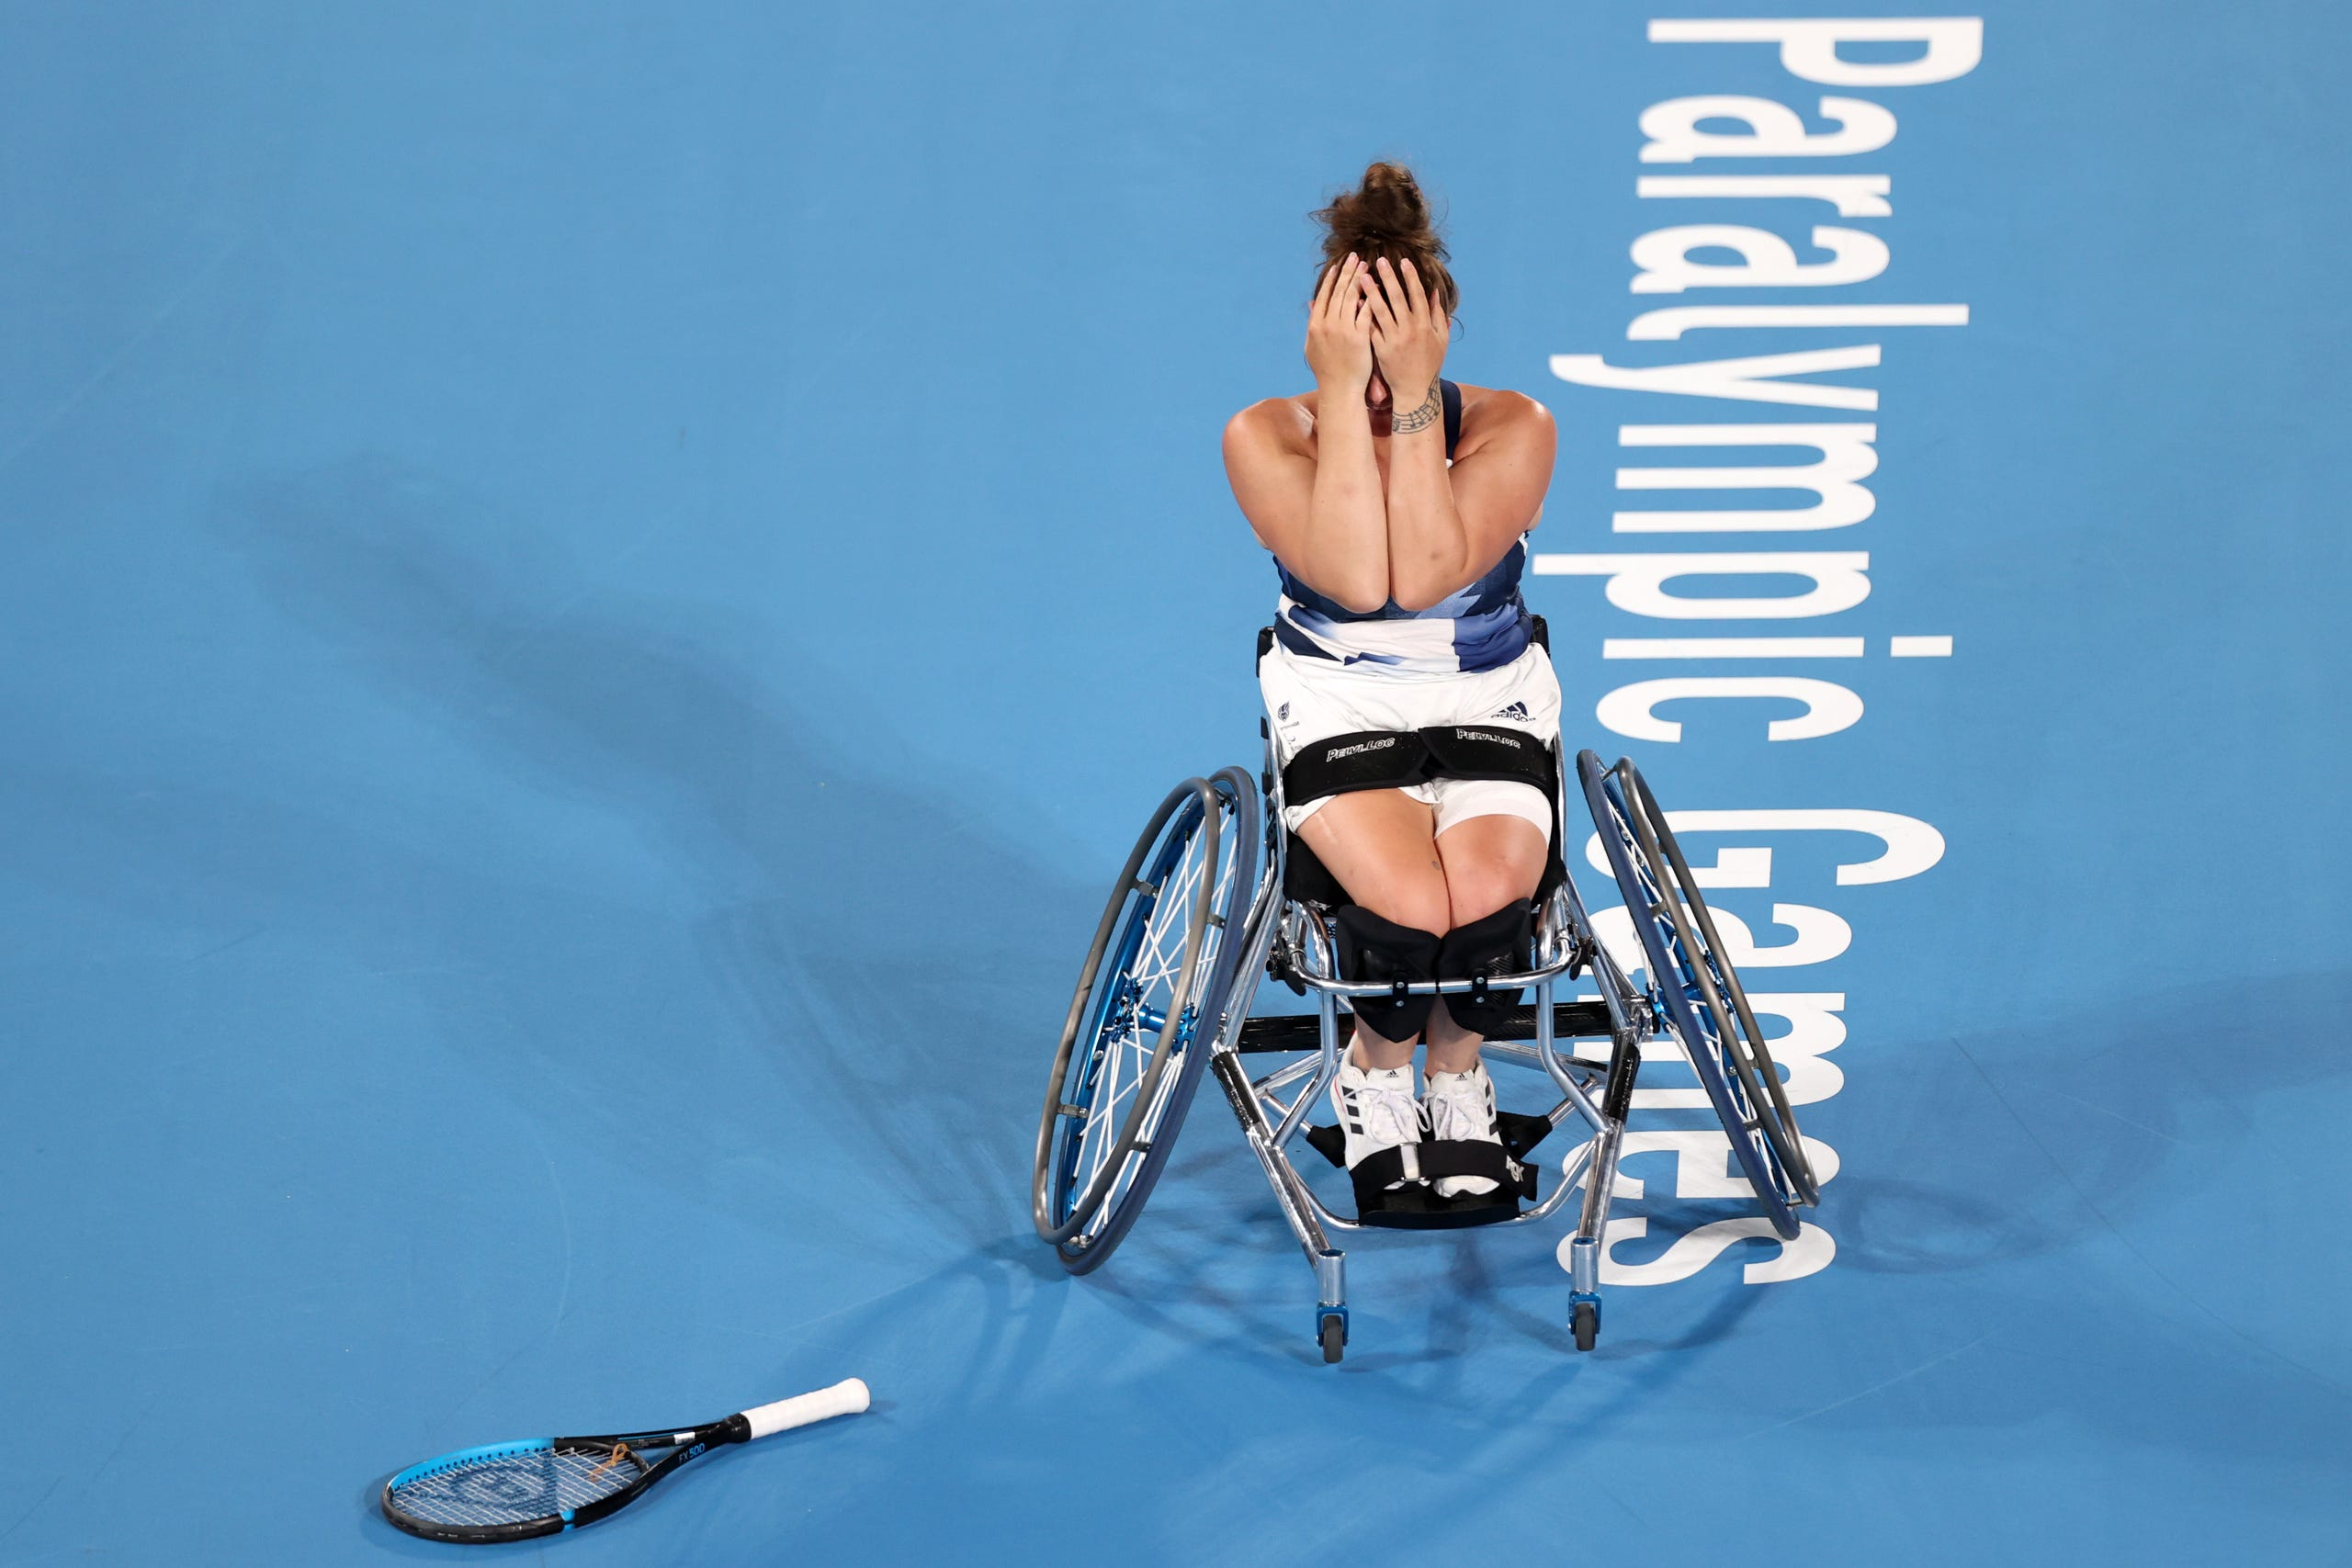 Sept. 3: Jordanne Whiley of Team Great Britain shows emotion as she wins the bronze medal after her victory over Aniek van Koot of Team Netherlands in the Wheelchair Tennis Women's Singles bronze medal match on day 10 of the Tokyo 2020 Paralympic Games at Ariake Tennis Park.